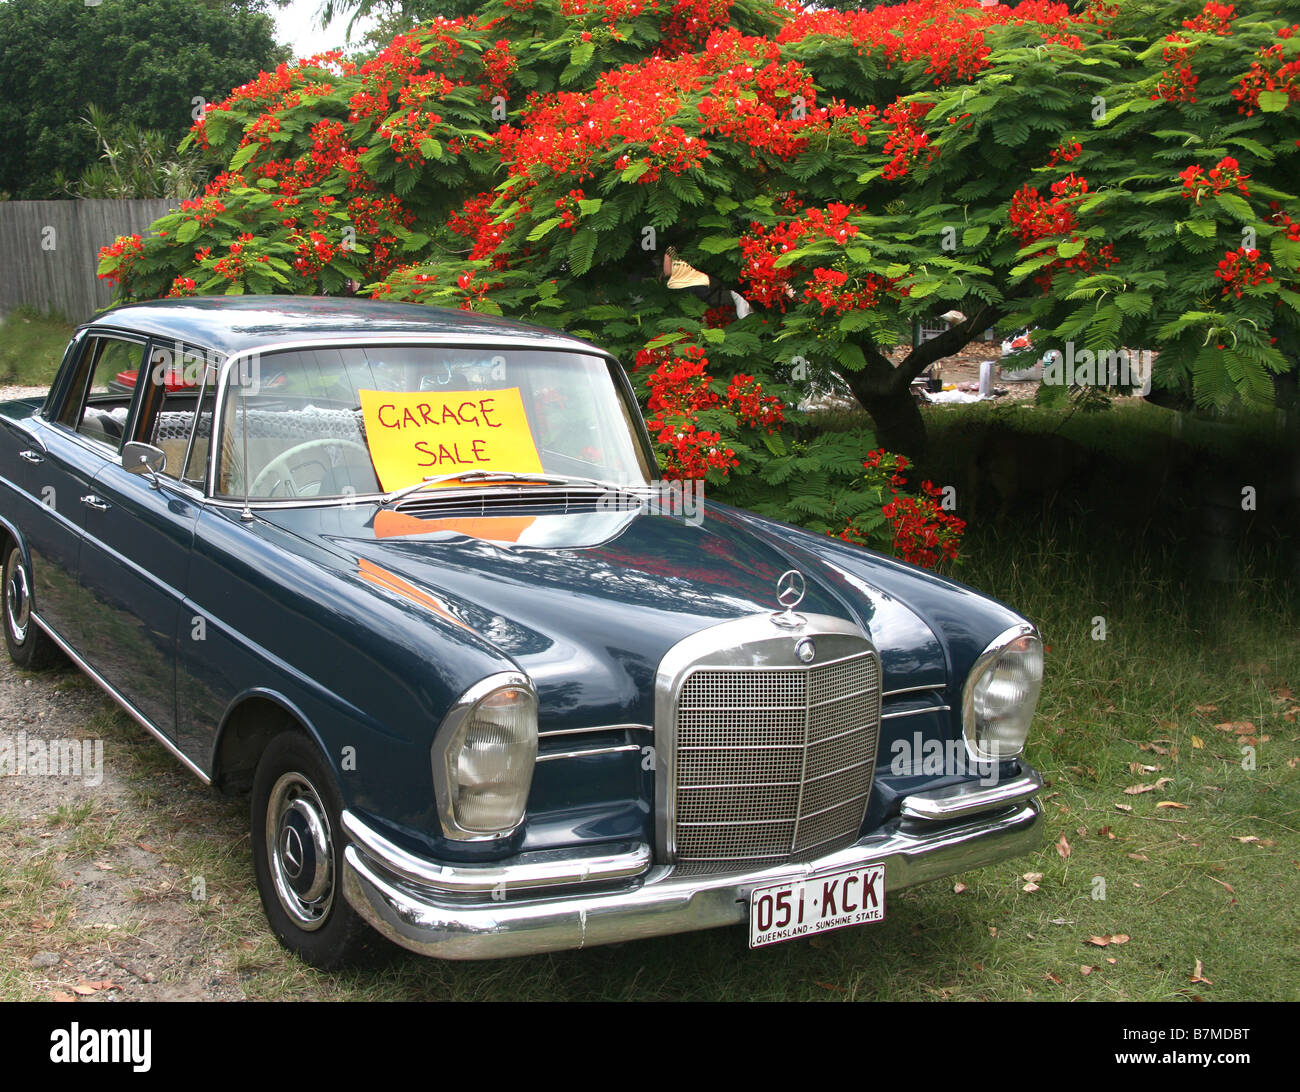 An early model Mercedes Benz displays a sign indicating a Garage Sale at Byron Bay Australia Roadside - Stock Image